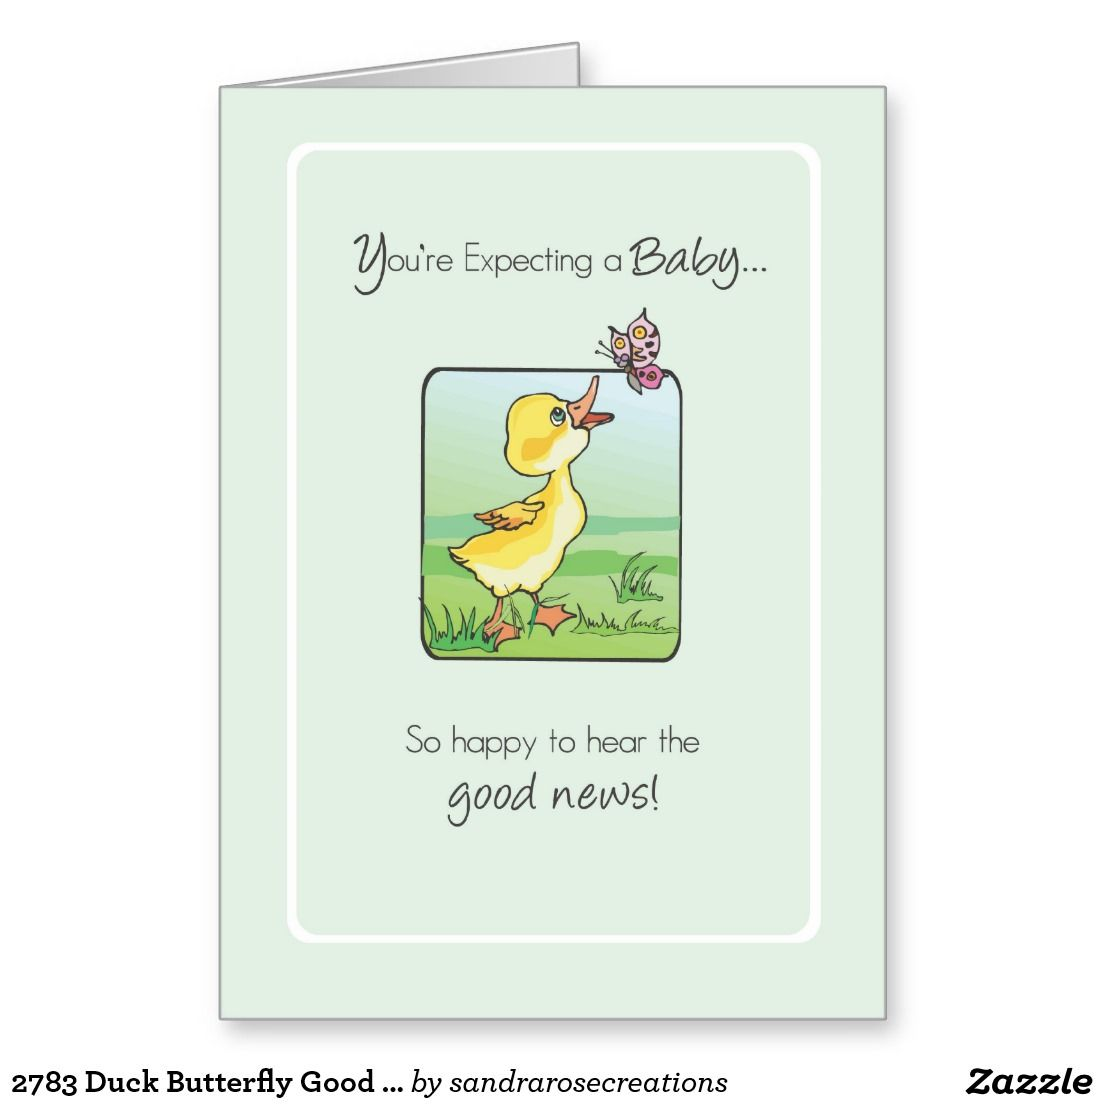 2783 duck butterfly good news expecting baby greeting card baby 2783 duck butterfly good news expecting baby greeting card kristyandbryce Images